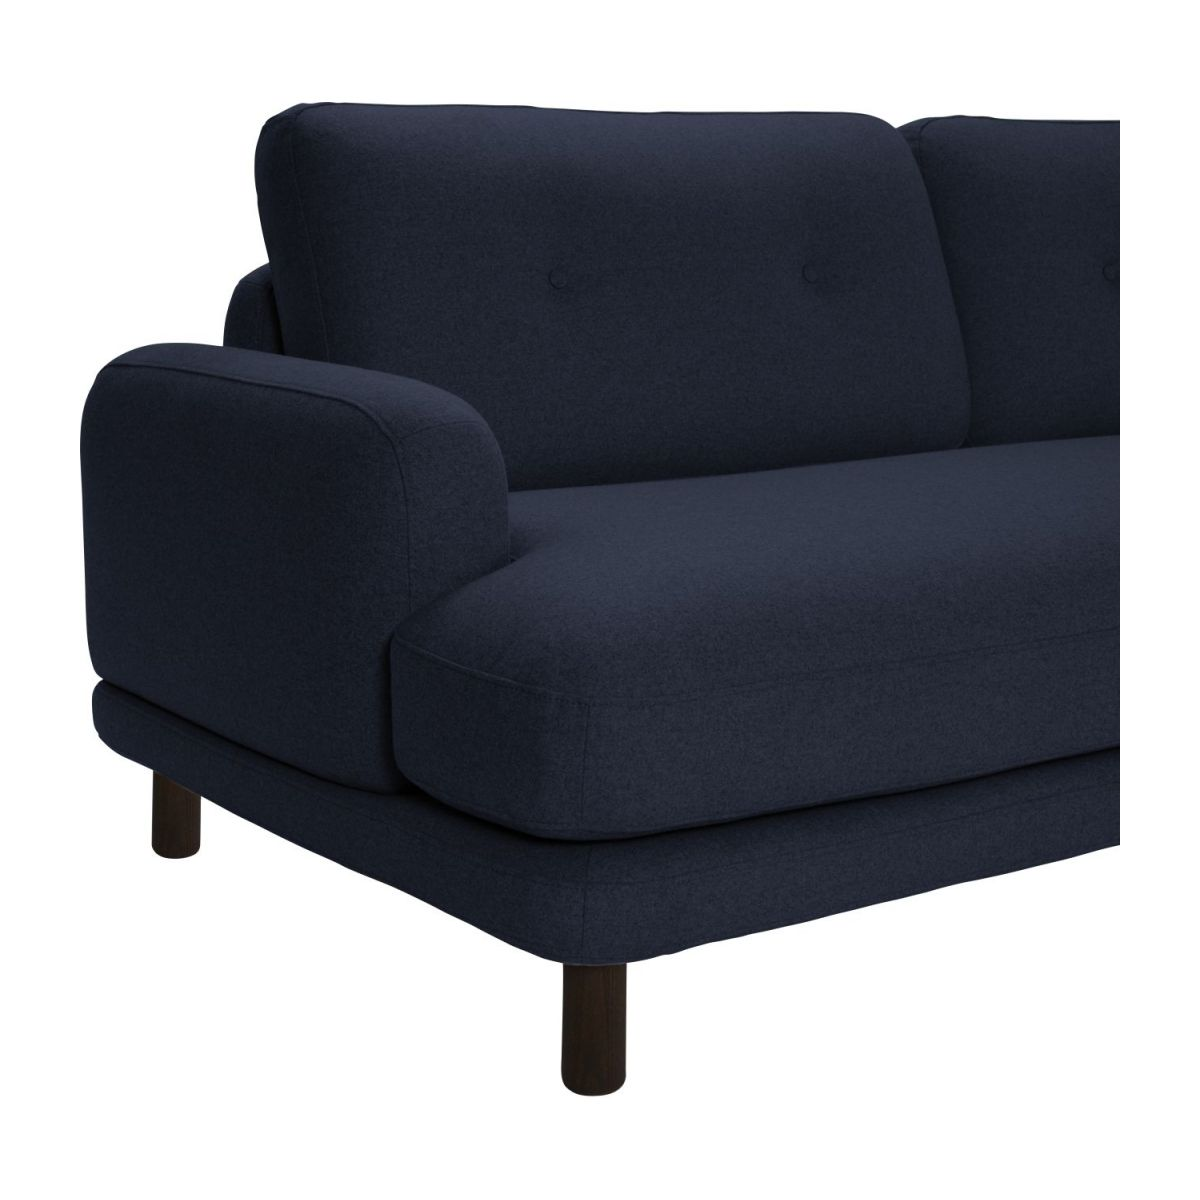 3-seater sofa in wool felt n°6